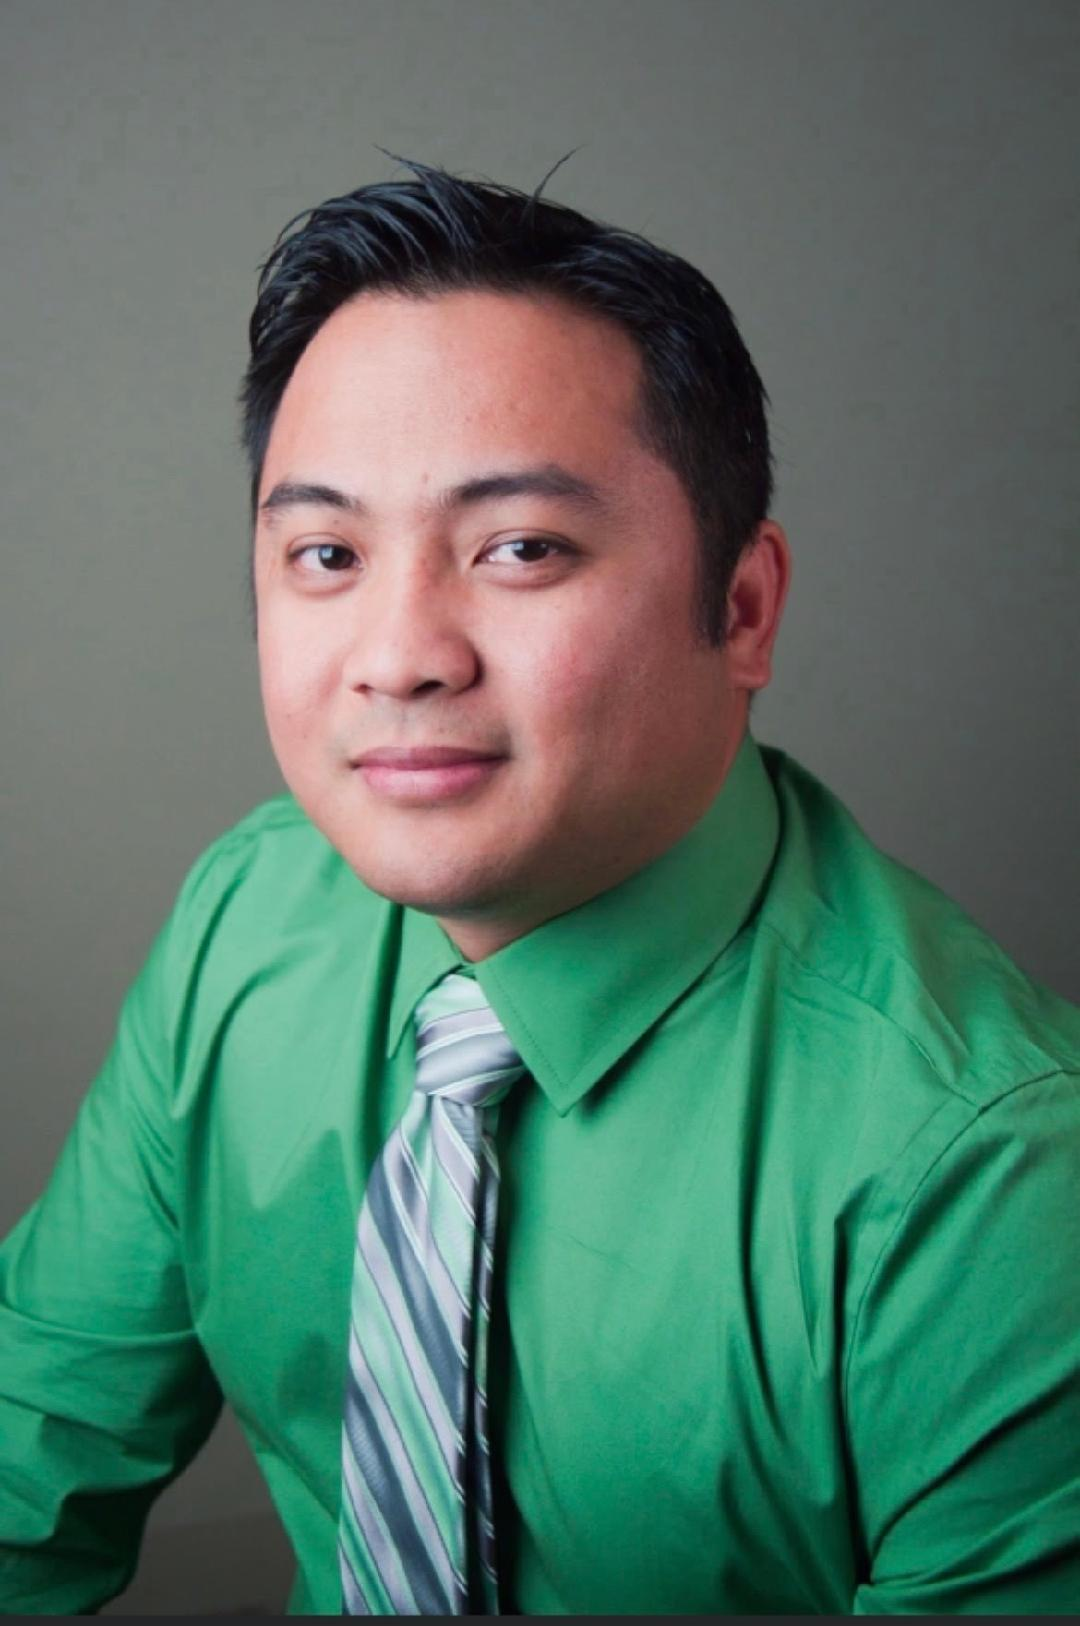 FRANCIS FLORES CABADDU  Your Financial Professional & Insurance Agent